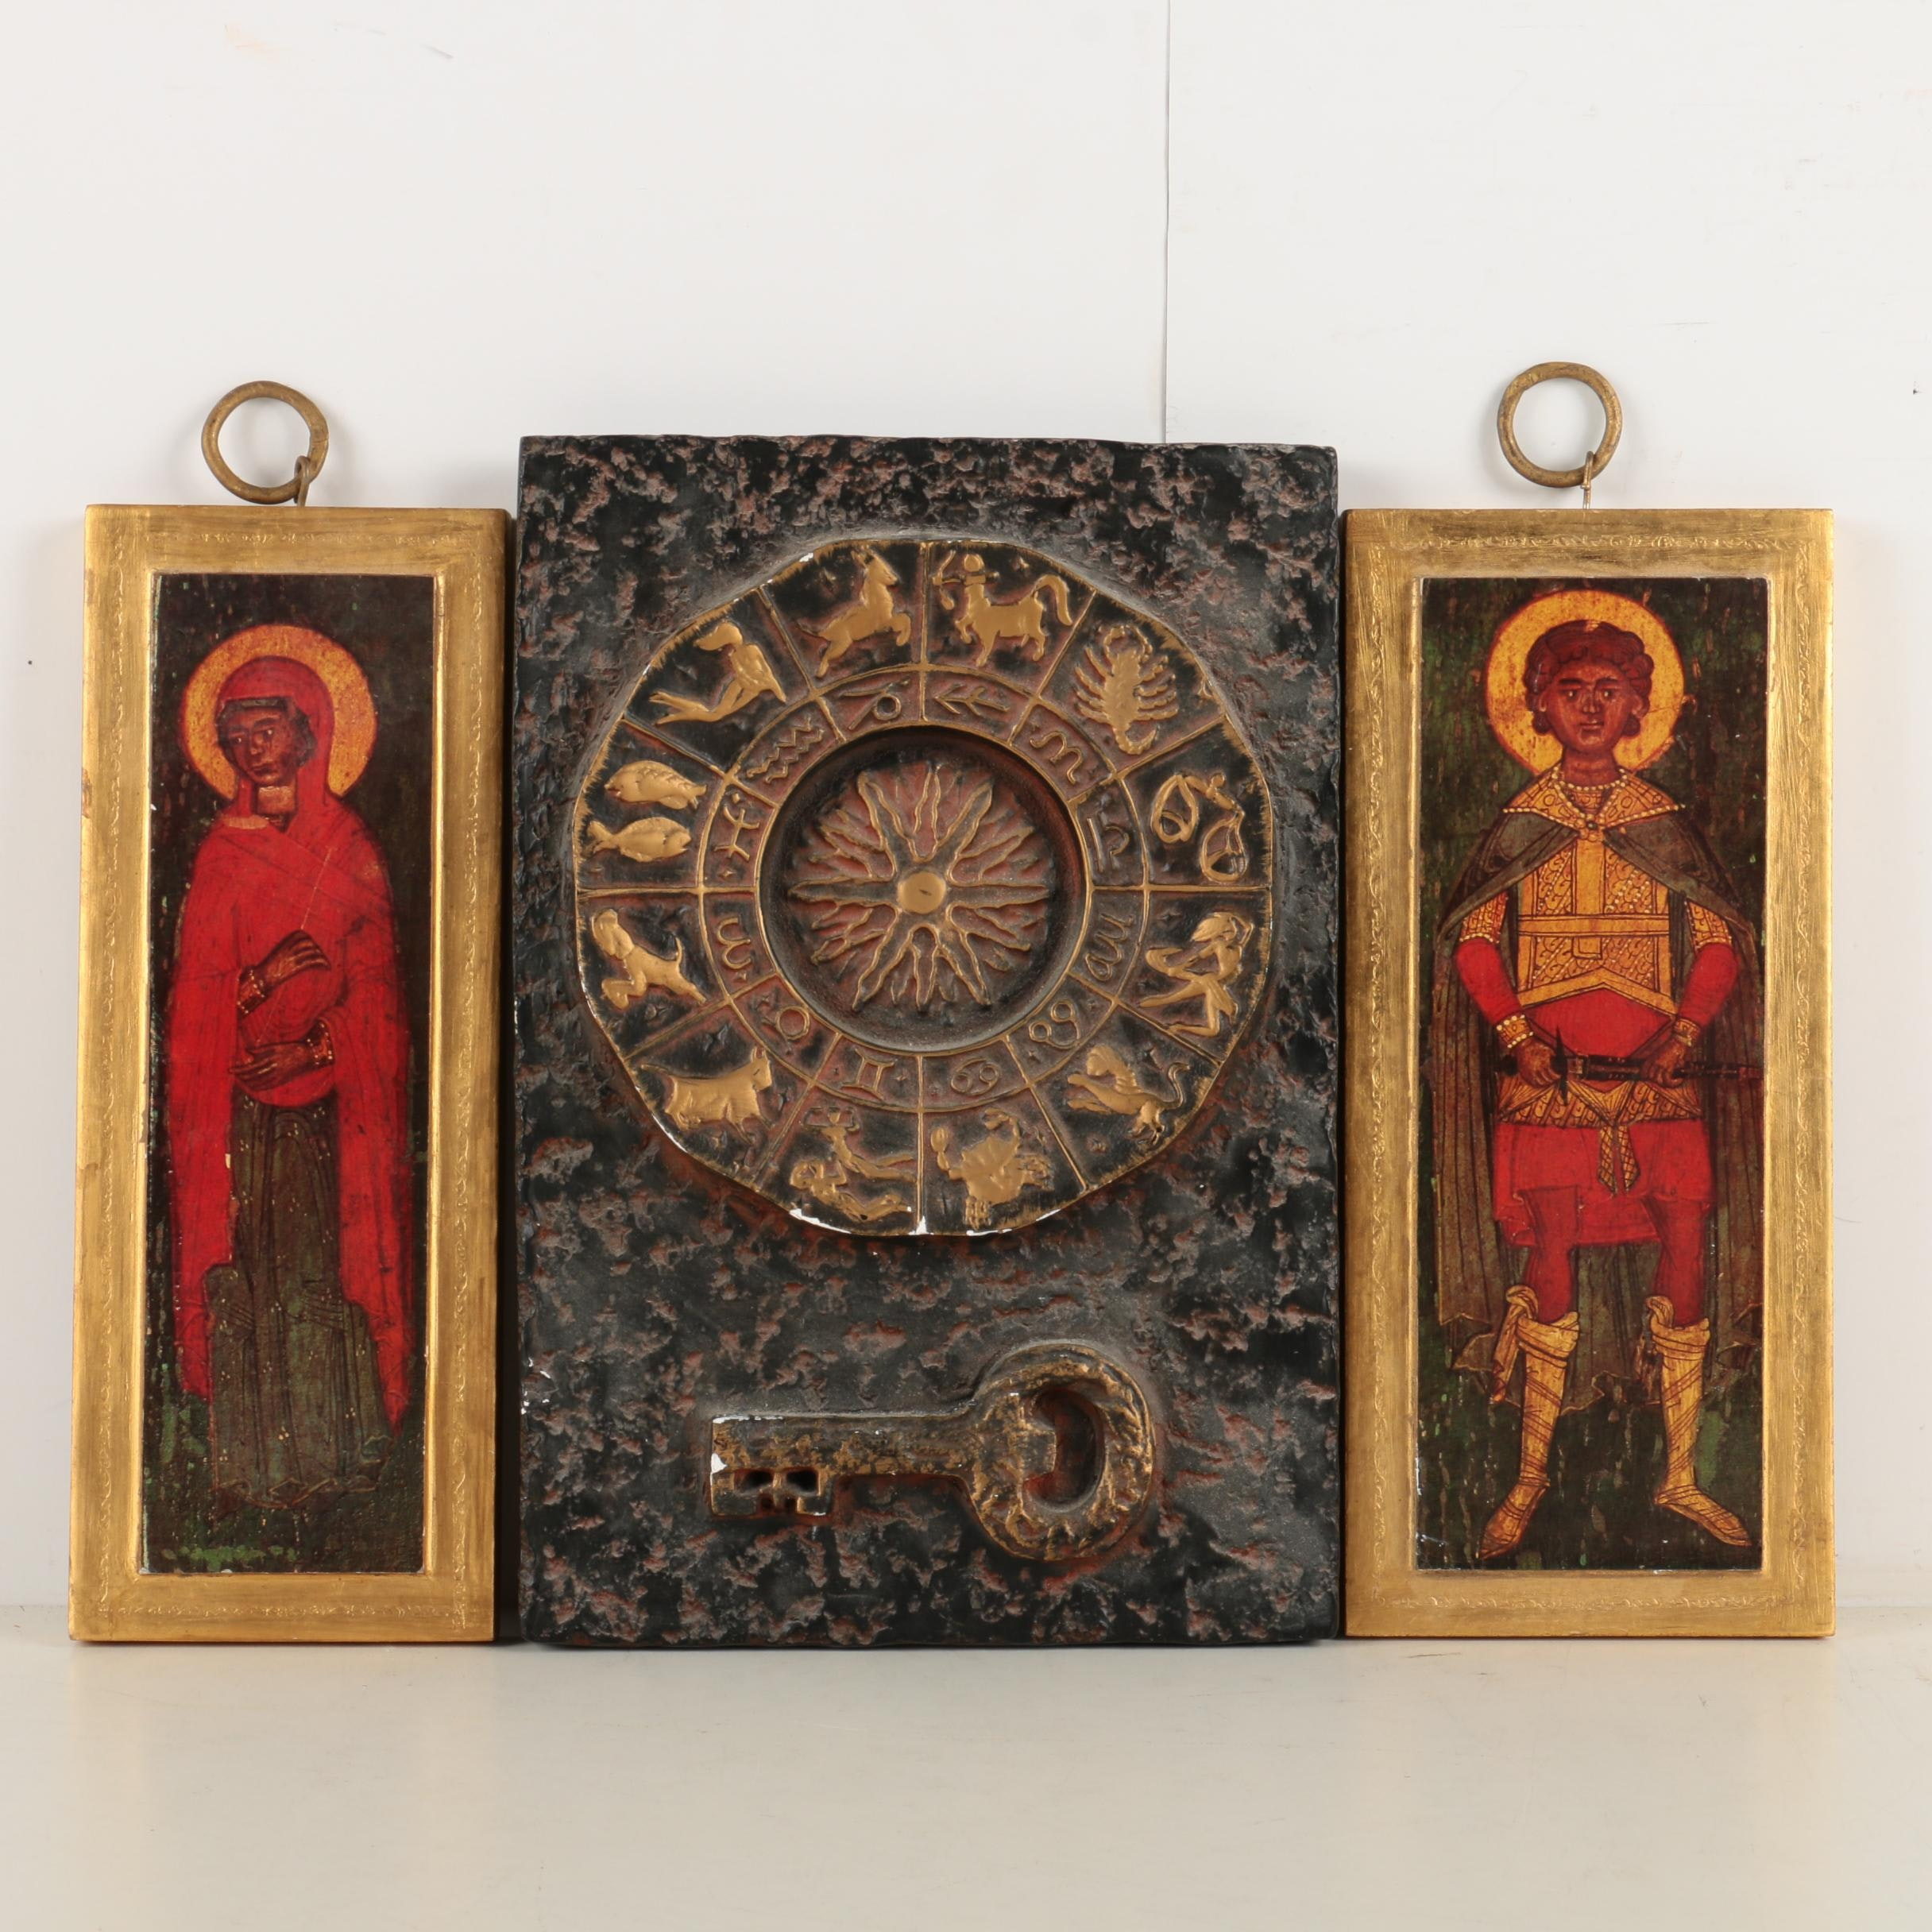 Plaster Astrological Wall Decor and Decorative Icons on Wood